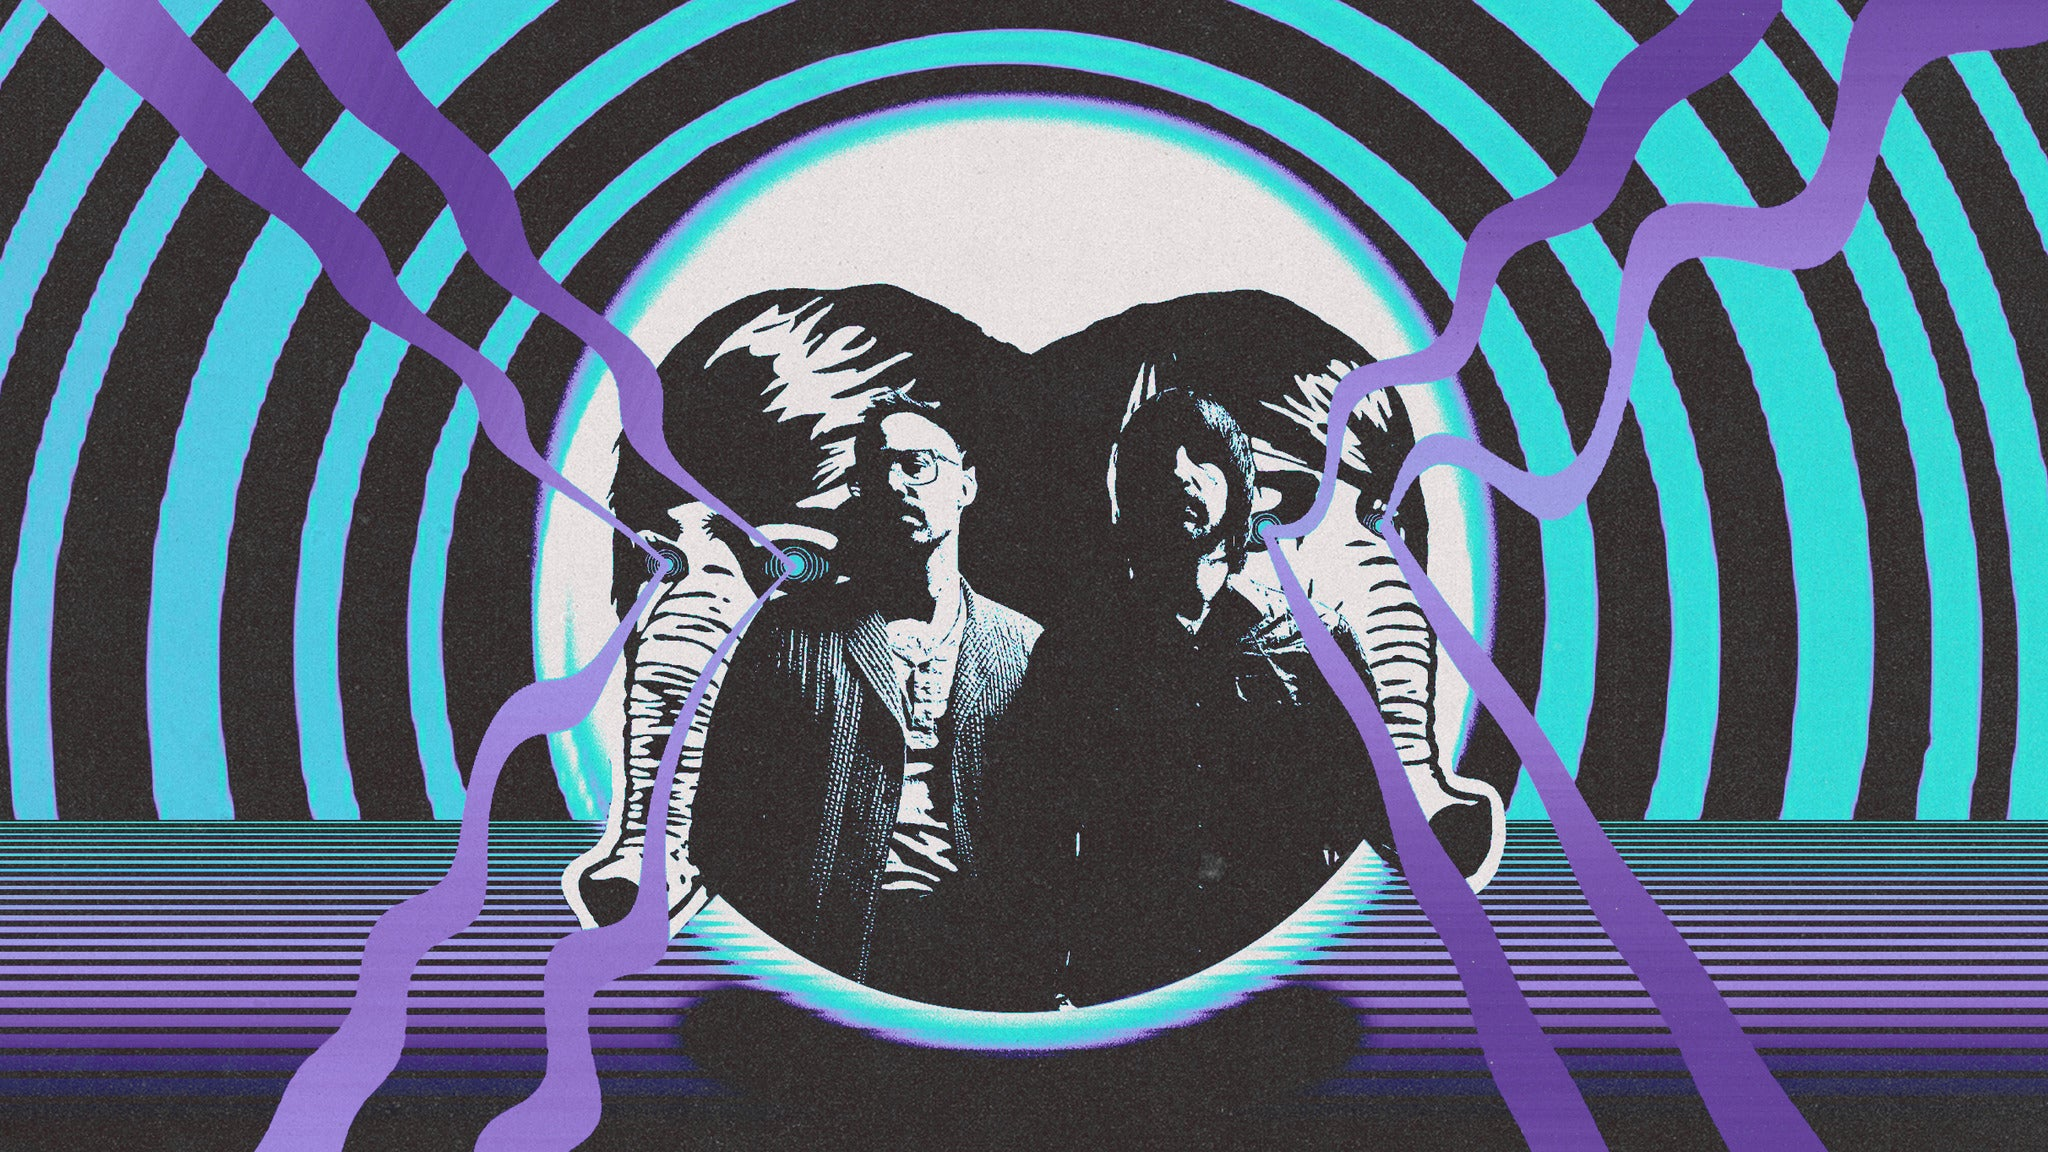 Death From Above 1979 - Is 4 Lovers presale code